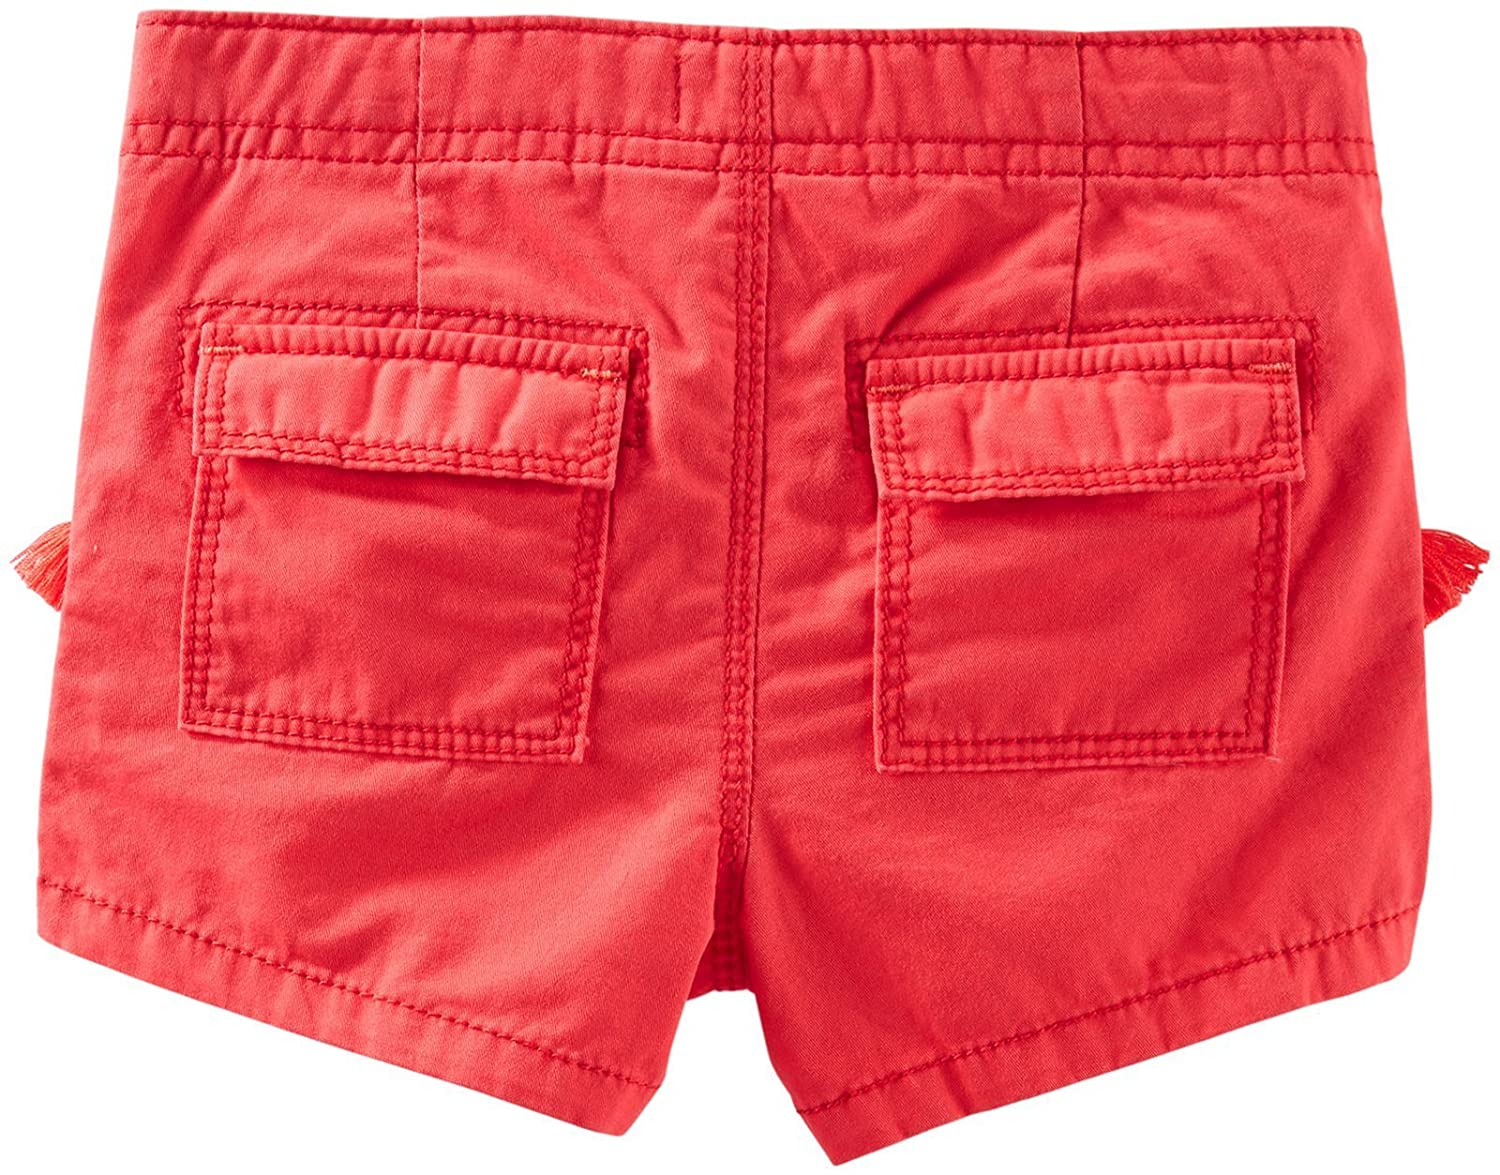 Toddler//Kid OshKosh Bgosh Little Girls Woven Shorts